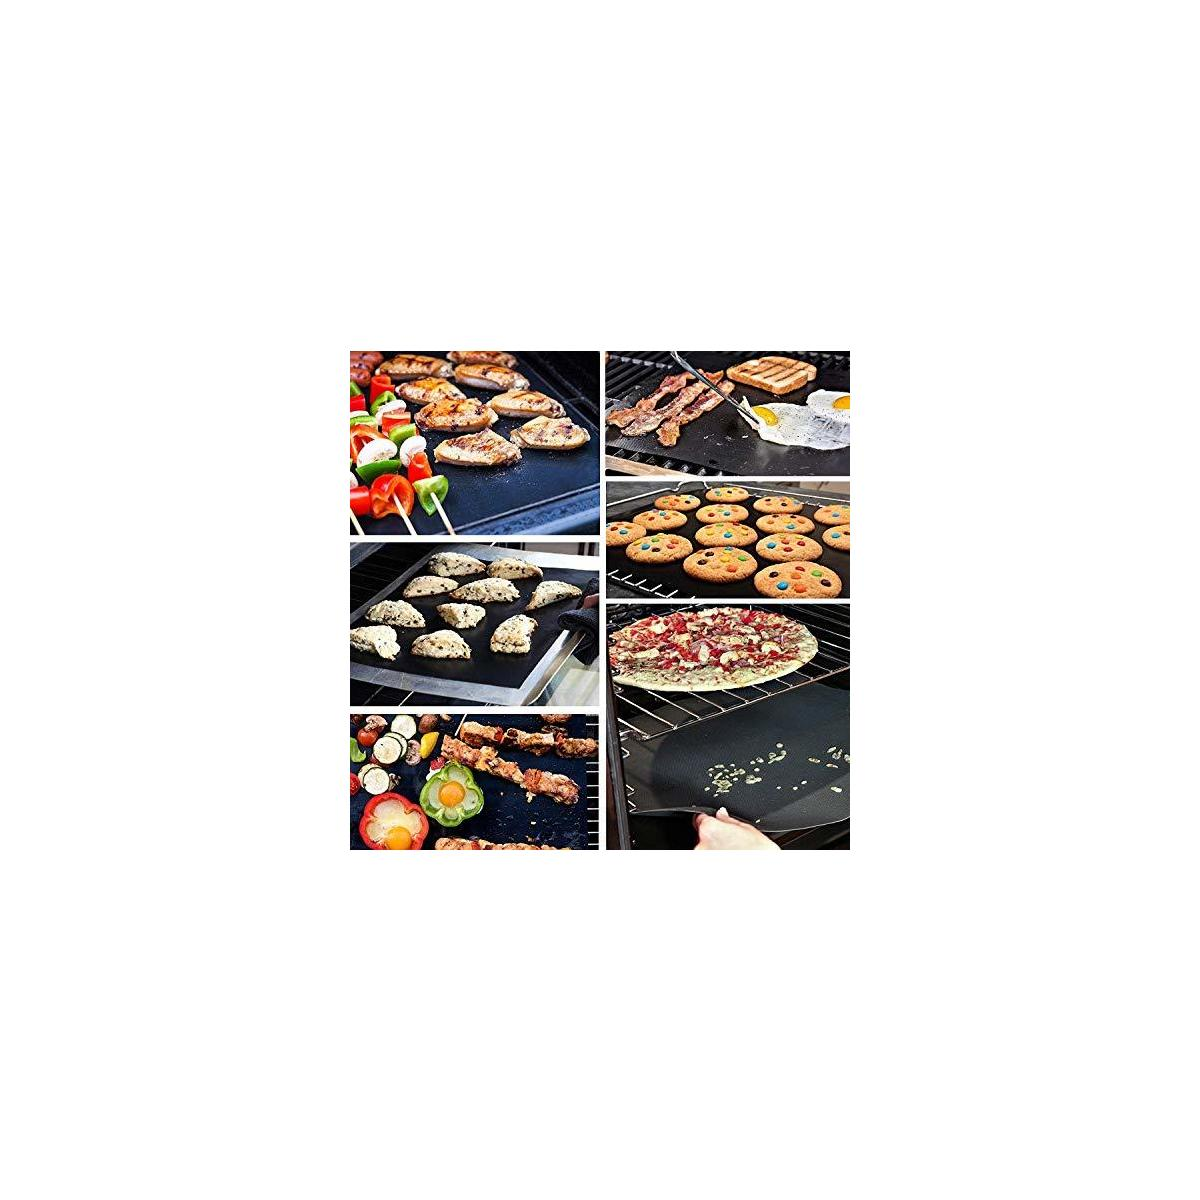 Grill mat Set of 3 - BBQ Grill Mats Non Stick Reusable - Grilling mats for Gas Grill - Baking Pads Nonstick use on Charcoal Electric Grills - Easy to Clean Outdoor Barbeque Grilling Accessories Black